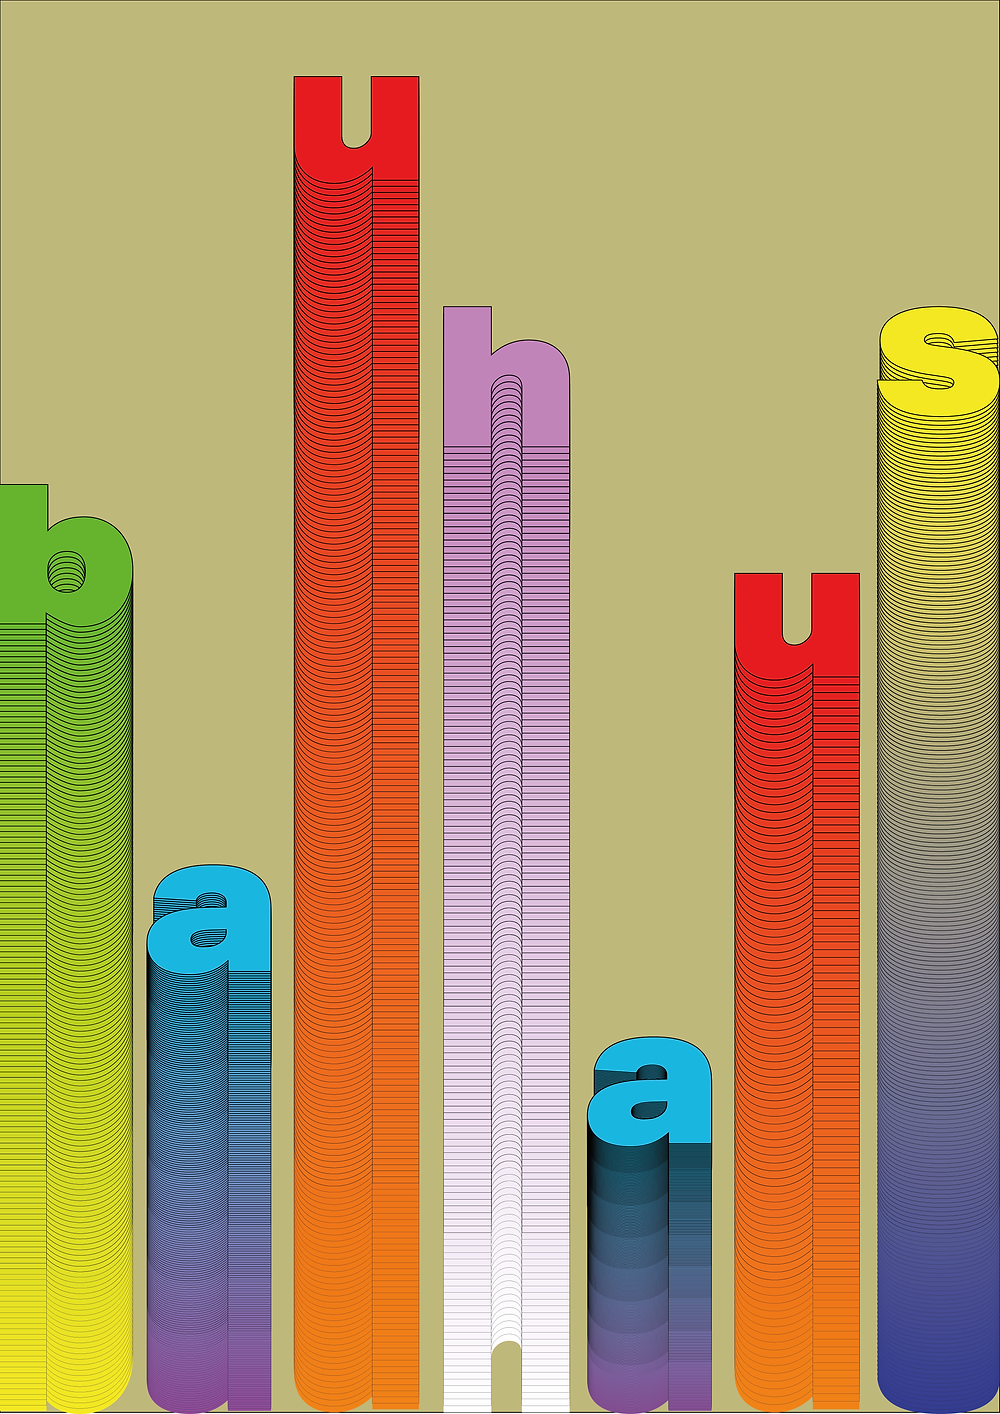 Bauhaus: With it being 100 years of Bauhaus I wanted to encapsulate this with a design. I stretched the letters downwards to represent the illustrious heritage the iconic movement has and I used the colours to give the piece a zingy pop. I think it worked well and it's one of my favourite pieces i've designed this year so far.